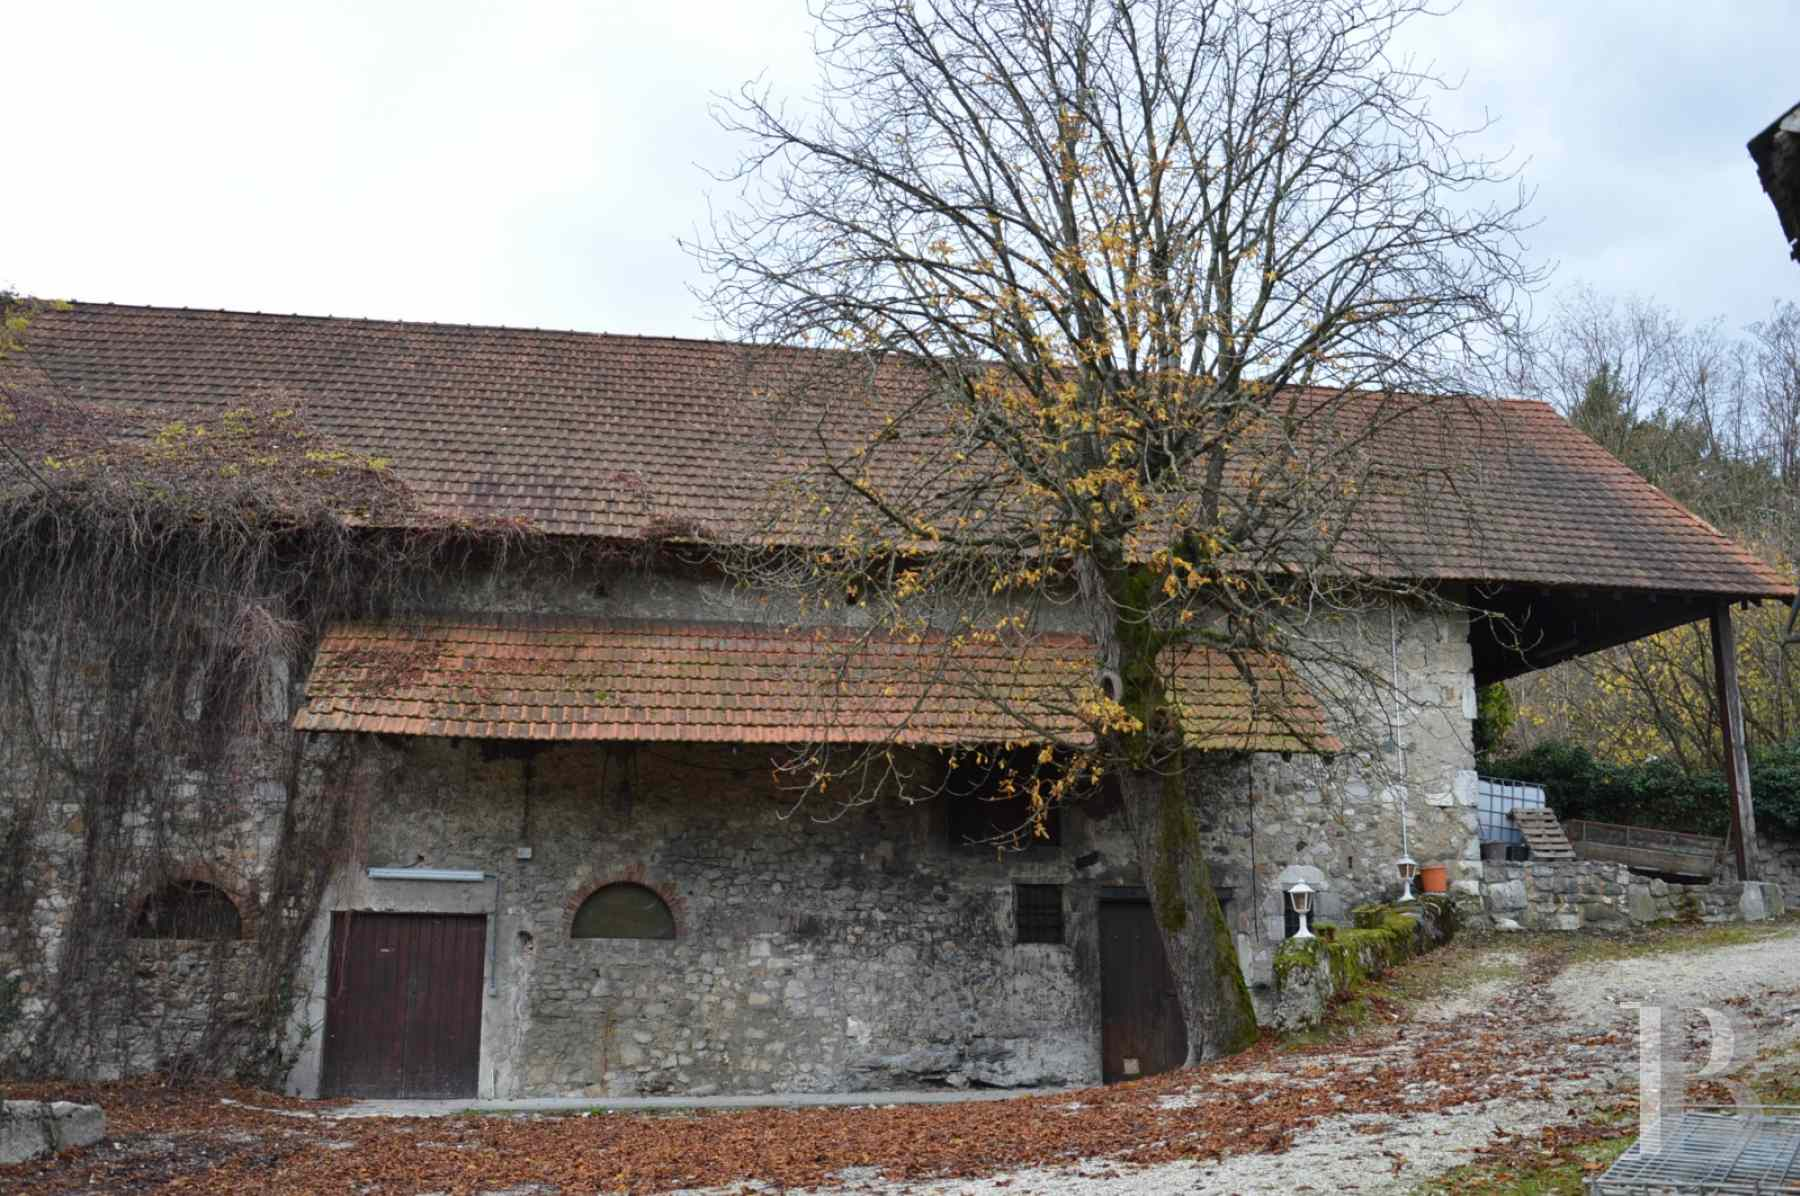 chateaux for sale France rhones alps chambery 18th - 14 zoom